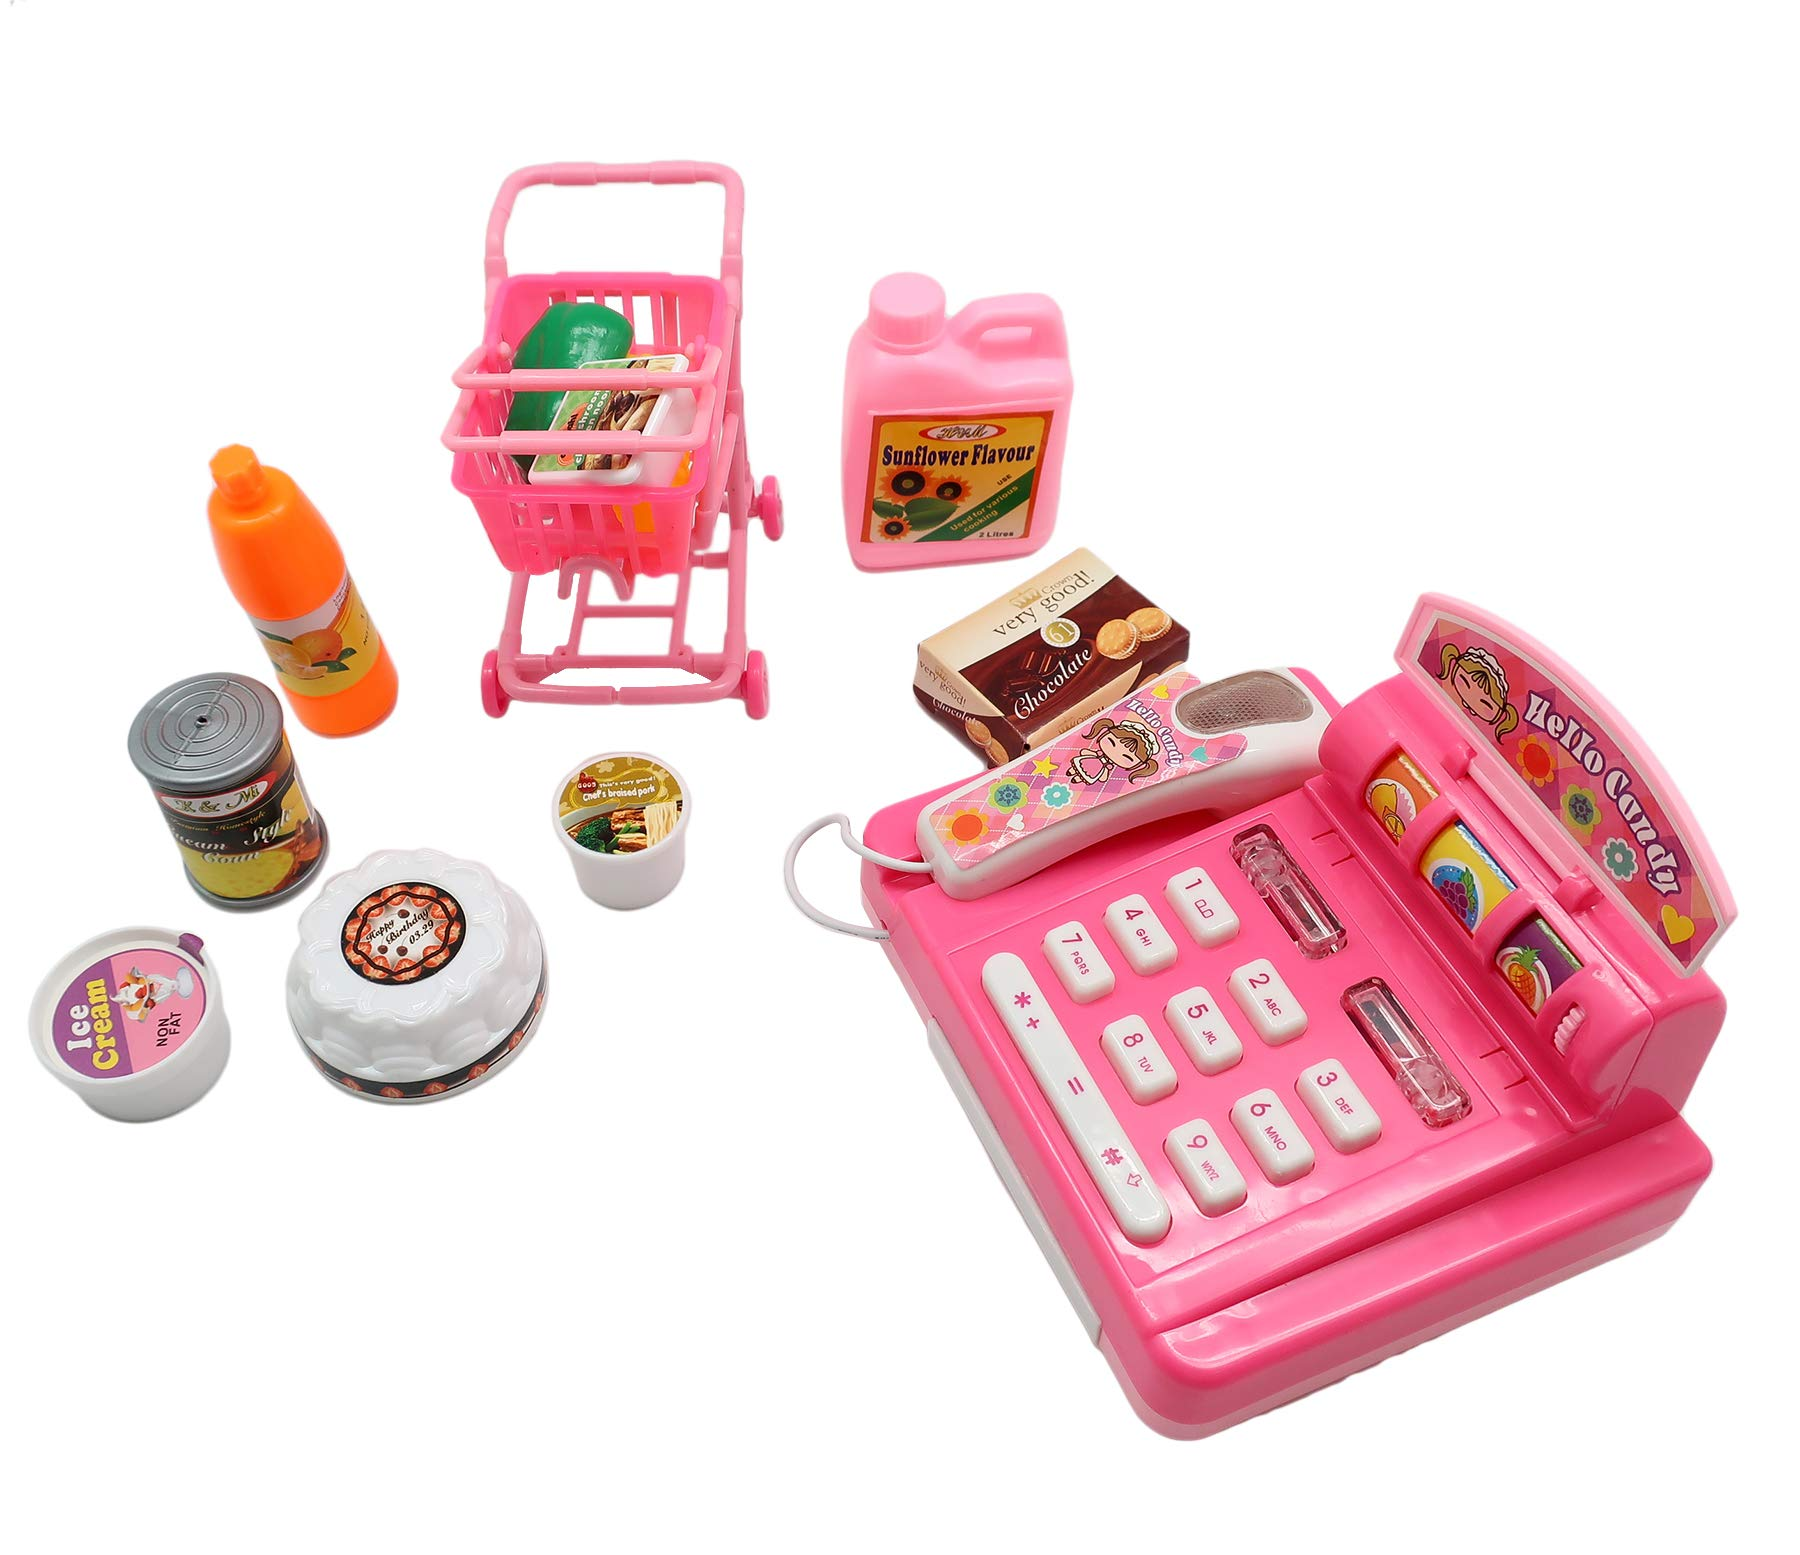 Mini Shopping Set for Kids - Ideal Pretend Play Kit for 3+- Features Realistic Miniature Grocery Store Items, Cash Register, Shopping Cart ~ Great Birthday